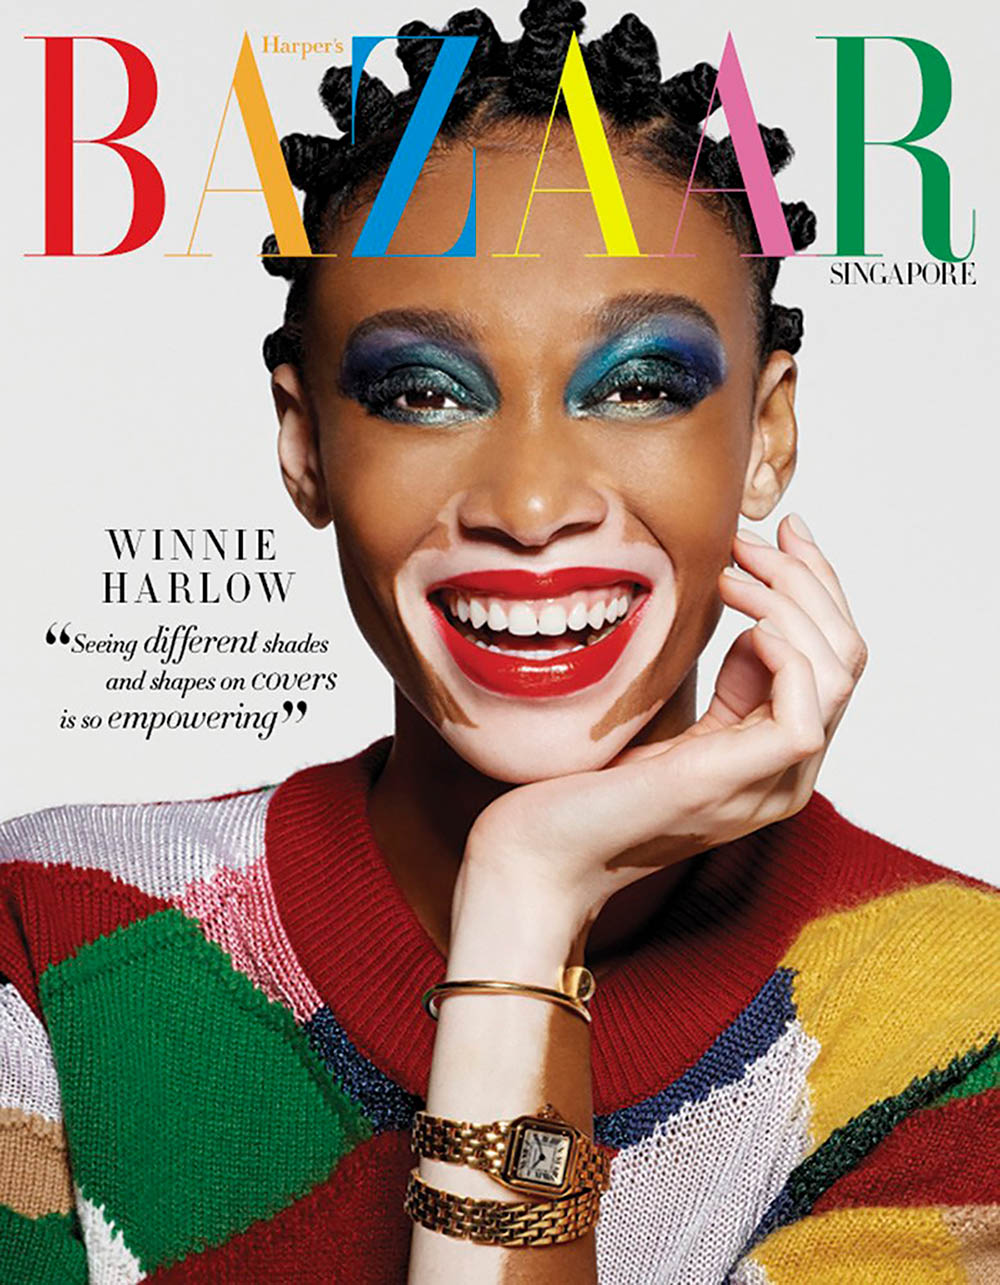 Winnie Harlow covers Harper's Bazaar Singapore May 2018 by Yu Tsai